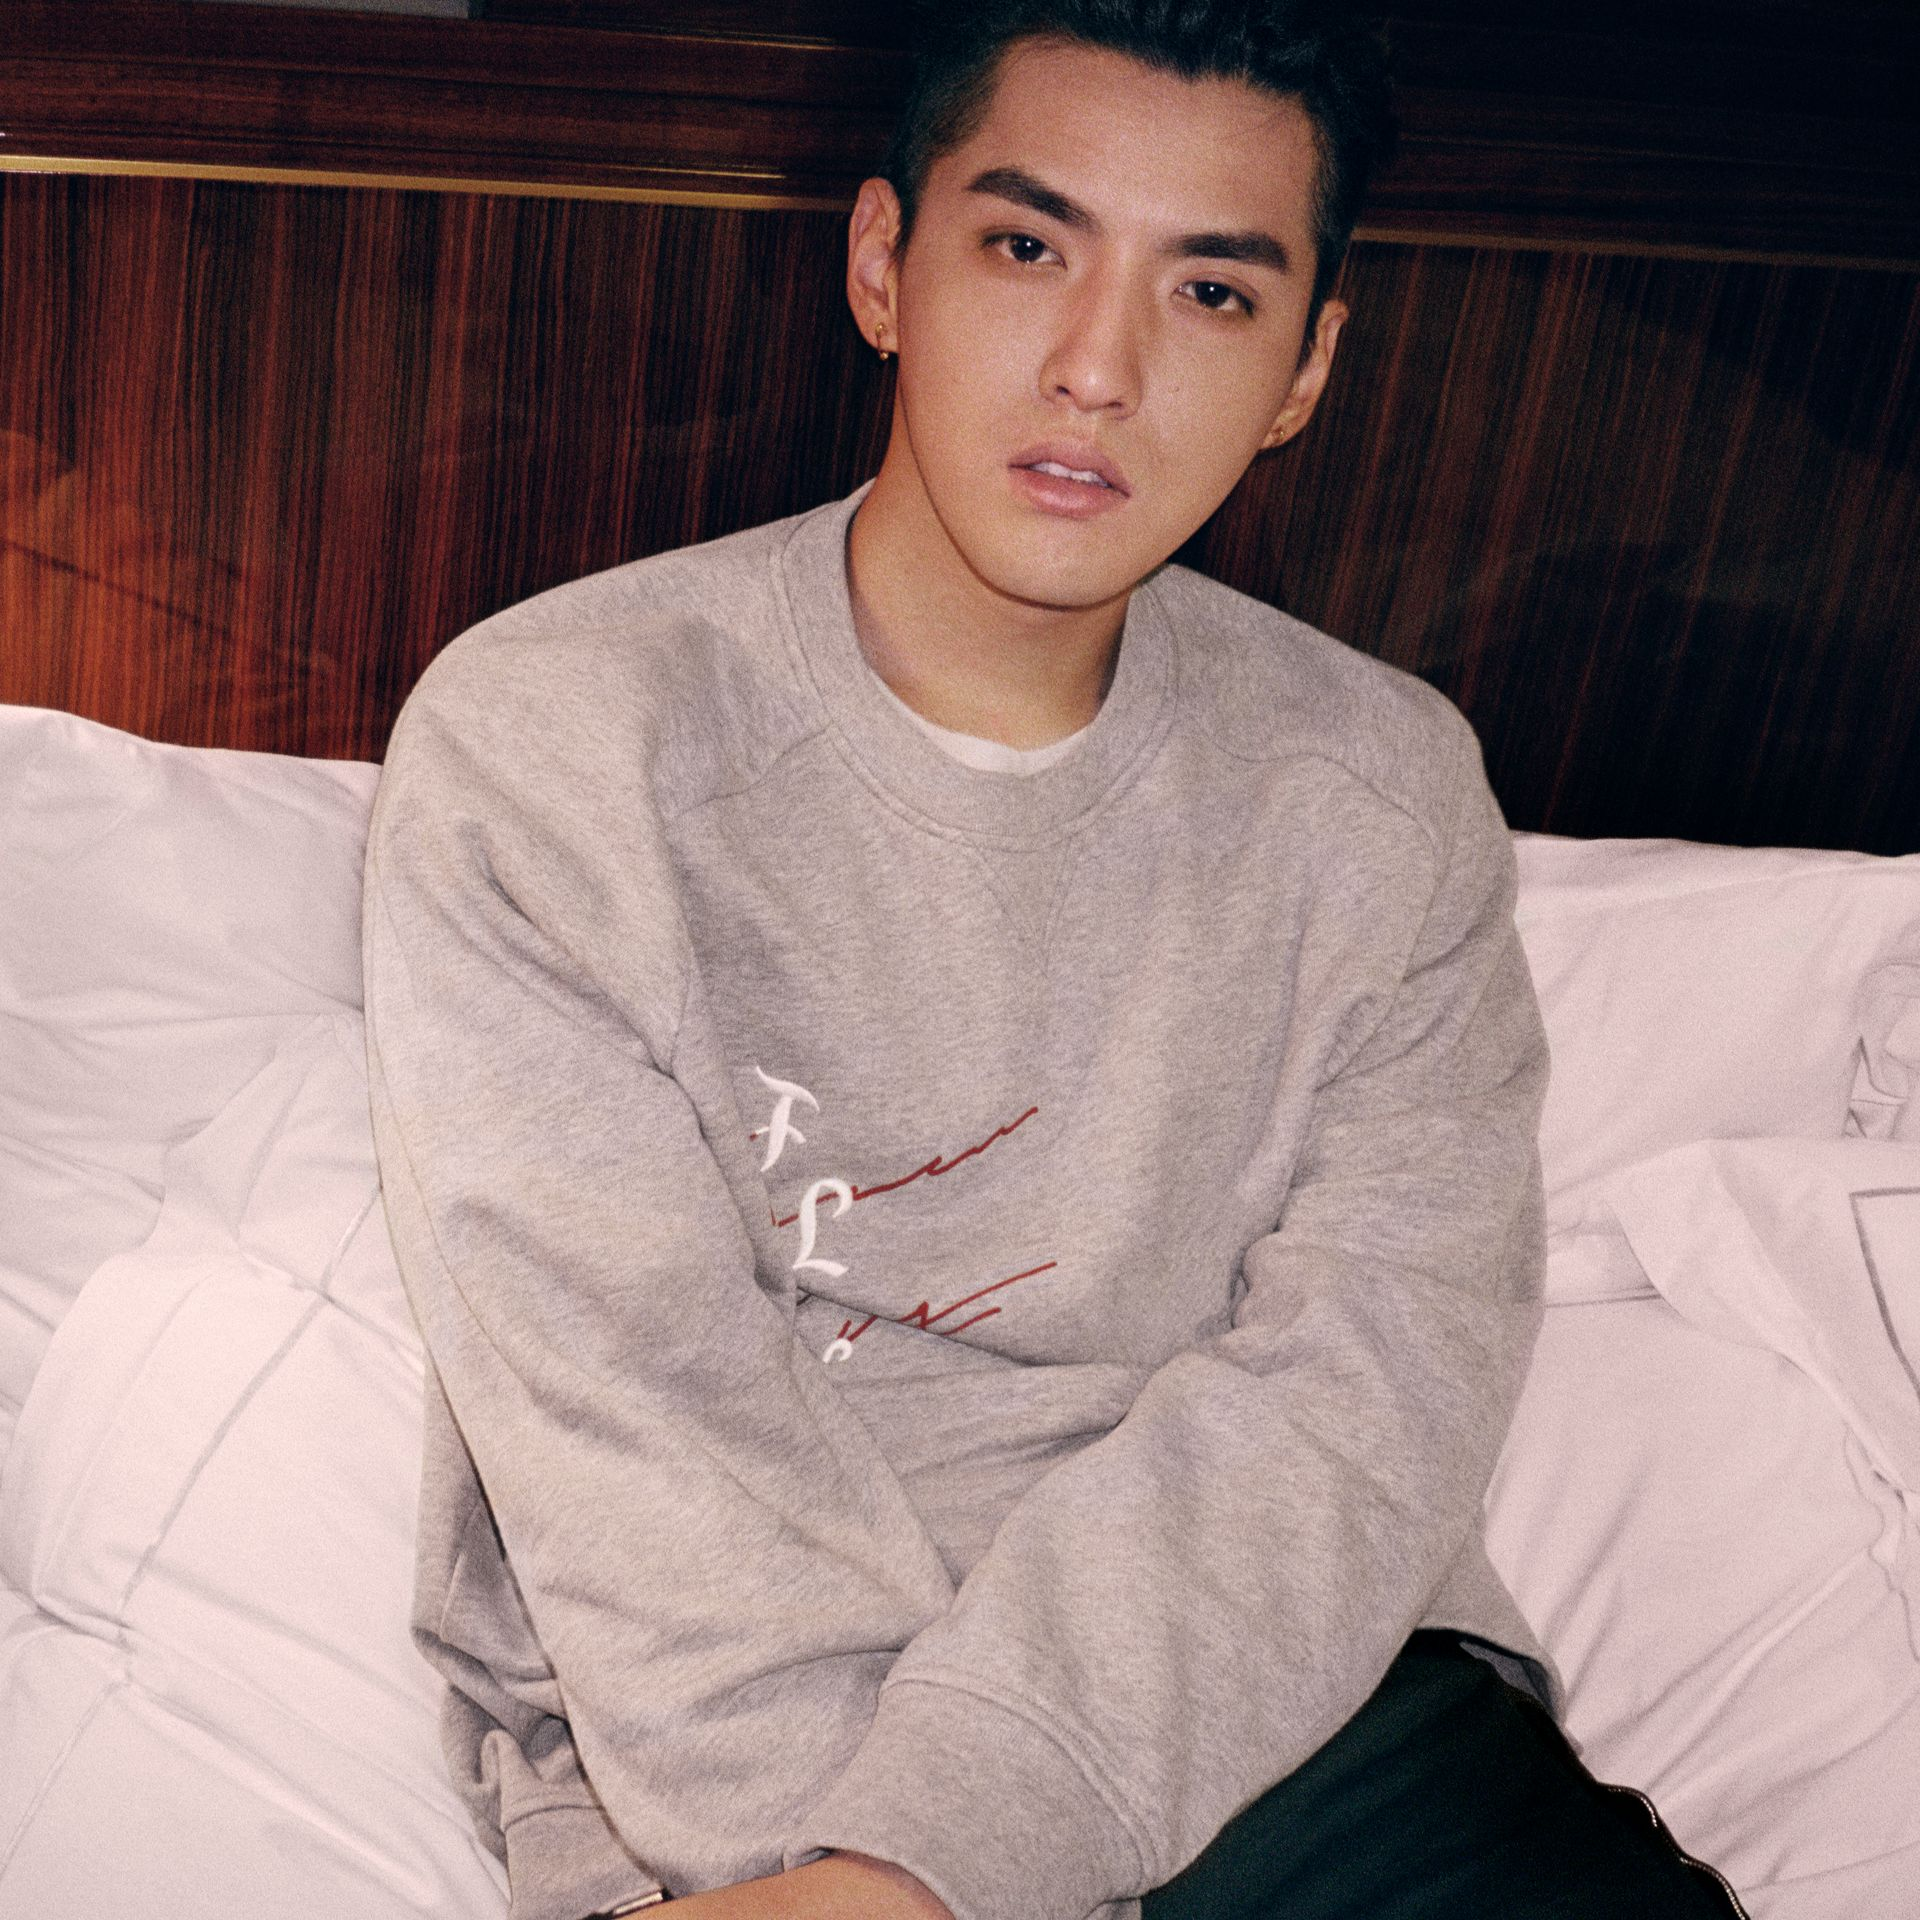 Burberry x Kris Wu Graphic Motif Sweatshirt in Pale Grey Melange - Men | Burberry United States - gallery image 4